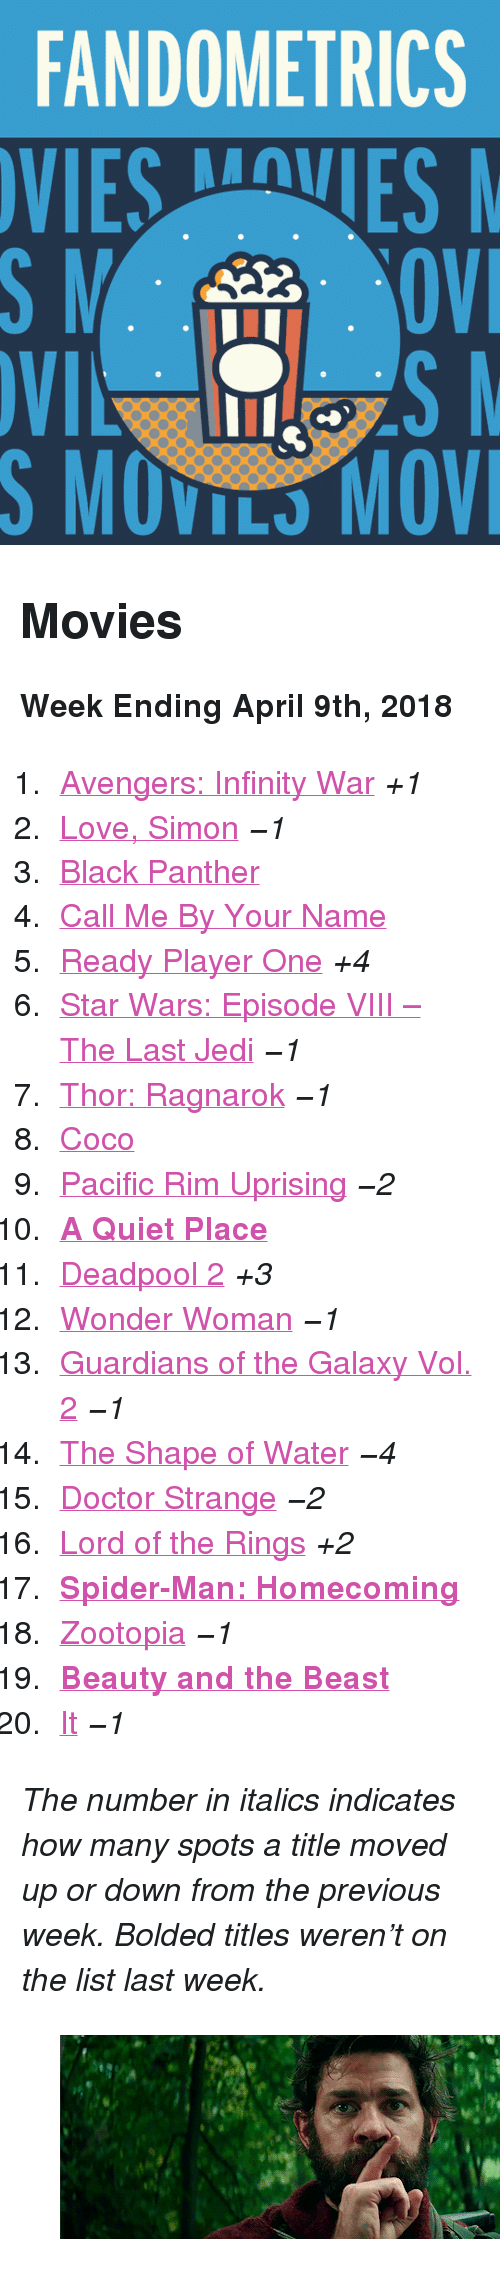 "CoCo, Doctor, and Gif: FANDOMETRICS  SMOVILS MOV <h2>Movies</h2><p><b>Week Ending April 9th, 2018</b></p><ol><li><a href=""http://www.tumblr.com/search/infinity%20war"">Avengers: Infinity War</a> <i>+1</i></li>  <li><a href=""http://www.tumblr.com/search/love%20simon"">Love, Simon</a> <i><i>−1</i></i></li>  <li><a href=""http://www.tumblr.com/search/black%20panther"">Black Panther</a></li>  <li><a href=""http://www.tumblr.com/search/call%20me%20by%20your%20name"">Call Me By Your Name</a></li>  <li><a href=""http://www.tumblr.com/search/ready%20player%20one"">Ready Player One</a> <i>+4</i></li>  <li><a href=""http://www.tumblr.com/search/the%20last%20jedi"">Star Wars: Episode VIII – The Last Jedi</a> <i><i>−1</i></i></li>  <li><a href=""http://www.tumblr.com/search/thor%20ragnarok"">Thor: Ragnarok</a> <i><i>−1</i></i></li>  <li><a href=""http://www.tumblr.com/search/coco"">Coco</a></li>  <li><a href=""http://www.tumblr.com/search/pacific%20rim"">Pacific Rim Uprising</a> <i><i>−2</i></i></li>  <li><a href=""http://www.tumblr.com/search/a%20quiet%20place""><b>A Quiet Place</b></a></li>  <li><a href=""http://www.tumblr.com/search/deadpool"">Deadpool 2</a> <i>+3</i></li>  <li><a href=""http://www.tumblr.com/search/wonder%20woman"">Wonder Woman</a> <i><i>−1</i></i></li>  <li><a href=""http://www.tumblr.com/search/guardians%20of%20the%20galaxy"">Guardians of the Galaxy Vol. 2</a> <i><i>−1</i></i></li>  <li><a href=""http://www.tumblr.com/search/the%20shape%20of%20water"">The Shape of Water</a> <i><i>−4</i></i></li>  <li><a href=""http://www.tumblr.com/search/doctor%20strange"">Doctor Strange</a> <i><i>−2</i></i></li>  <li><a href=""http://www.tumblr.com/search/lotr"">Lord of the Rings</a> <i>+2</i></li>  <li><a href=""http://www.tumblr.com/search/spiderman%20homecoming""><b>Spider-Man: Homecoming</b></a></li>  <li><a href=""http://www.tumblr.com/search/zootopia"">Zootopia</a> <i><i>−1</i></i></li>  <li><a href=""http://www.tumblr.com/search/beauty%20and%20the%20beast""><b>Beauty and the Beast</b></a></li>  <li><a href=""http://www.tumblr.com/search/it%202017"">It</a> <i><i>−1</i></i></li></ol><p><i>The number in italics indicates how many spots a title moved up or down from the previous week. Bolded titles weren't on the list last week.</i></p><figure class=""tmblr-full"" data-orig-height=""209"" data-orig-width=""500"" data-tumblr-attribution=""filmgifs:Dn9-JYvTZ1eKfcFXAlzPwA:Zxv_Xb2WnlDXn""><img src=""https://78.media.tumblr.com/57db15b598772b4c577c2ca160a300de/tumblr_p6qc2064t31x0uneyo3_500.gif"" data-orig-height=""209"" data-orig-width=""500""/></figure>"